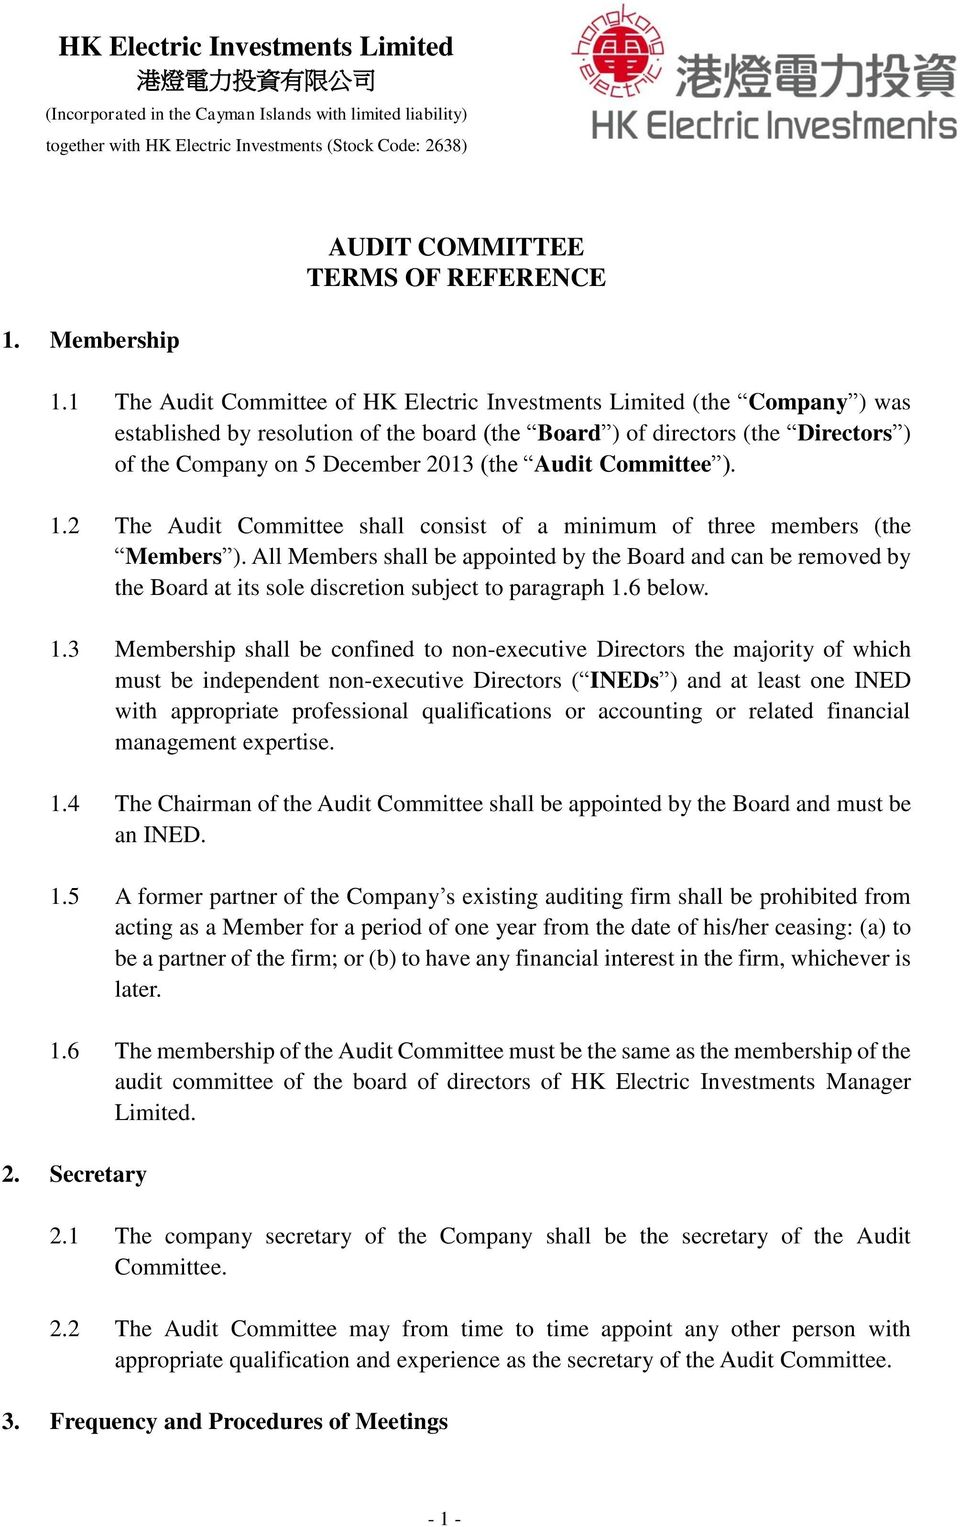 1 The Audit Committee of HK Electric Investments Limited (the Company ) was established by resolution of the board (the Board ) of directors (the Directors ) of the Company on 5 December 2013 (the